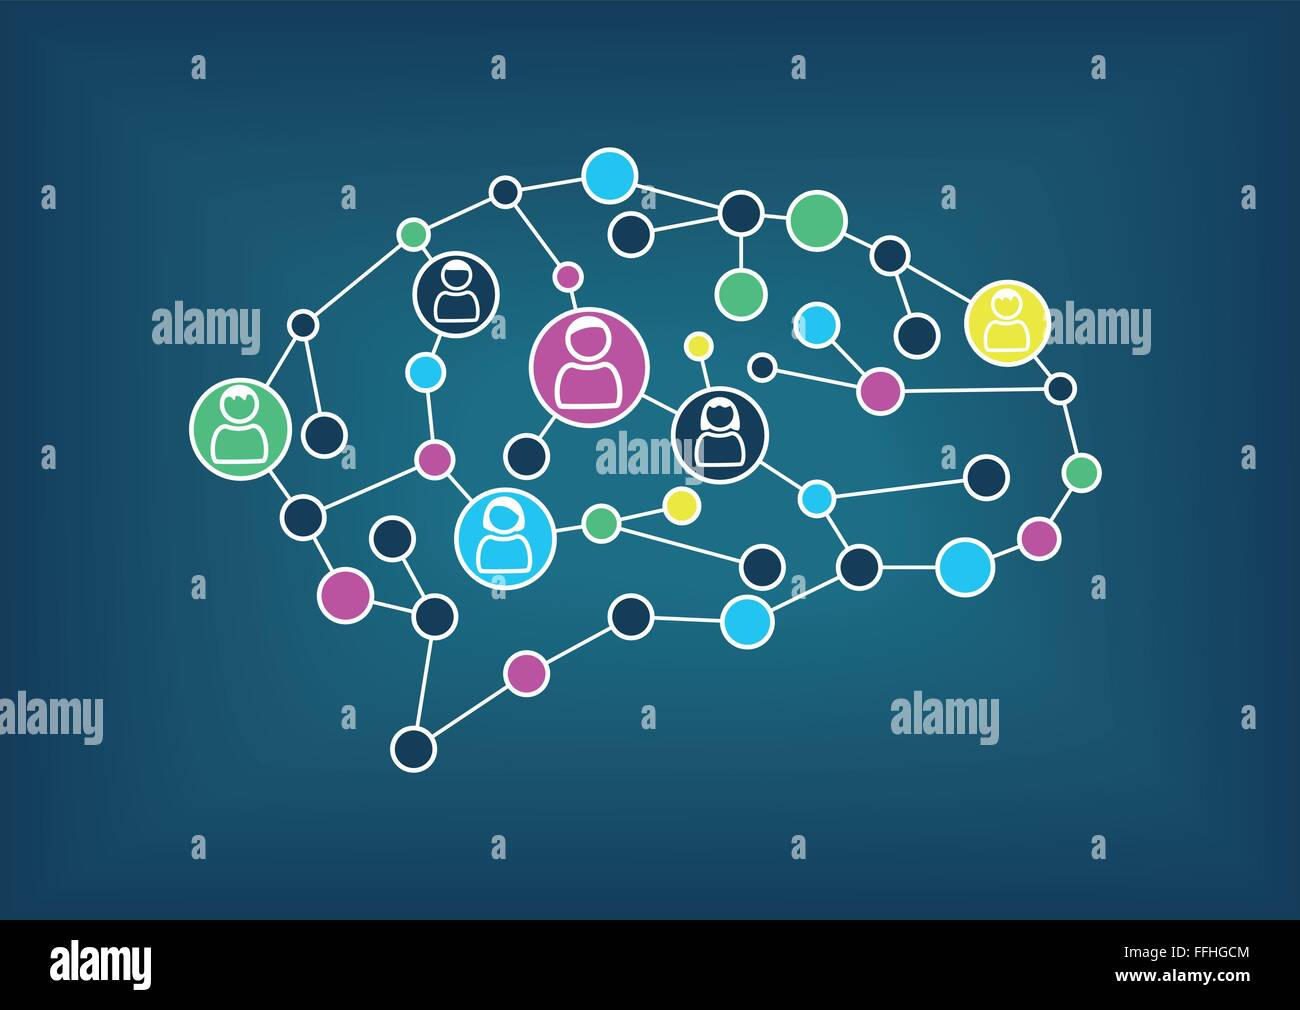 Swarm intelligence or crowd sourcing concept. Vector illustration of simplified brain with connections between nodes. - Stock Image